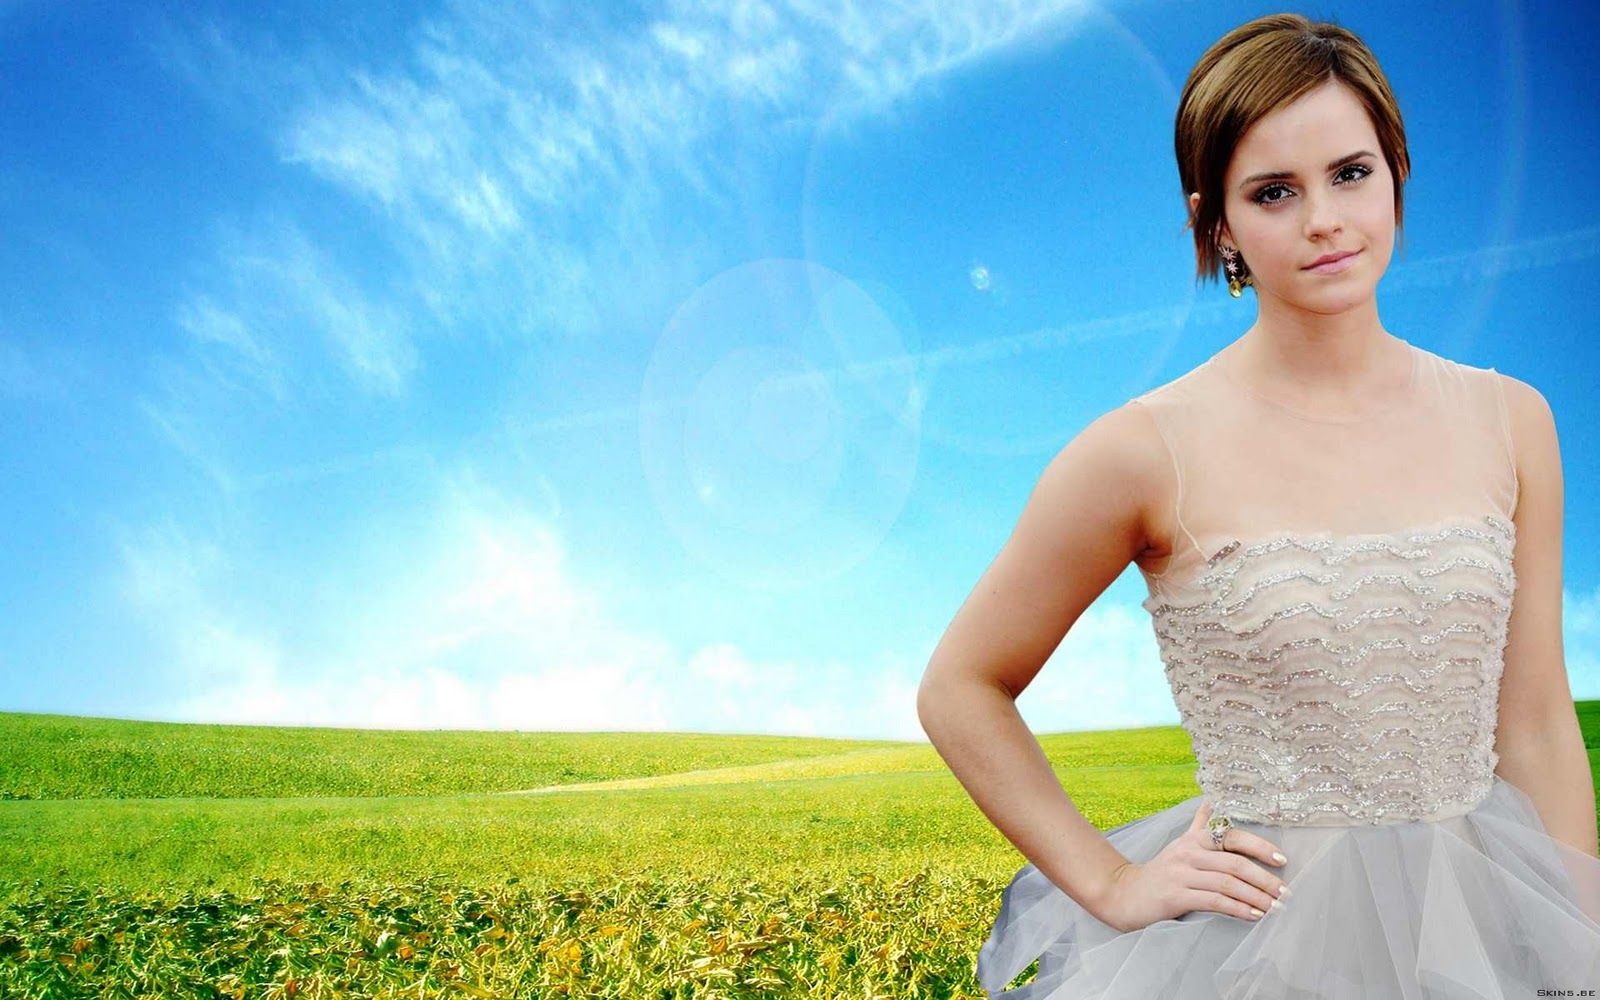 Free download emma watson wallpaper wallpapers area - Emma watson wallpaper free download ...